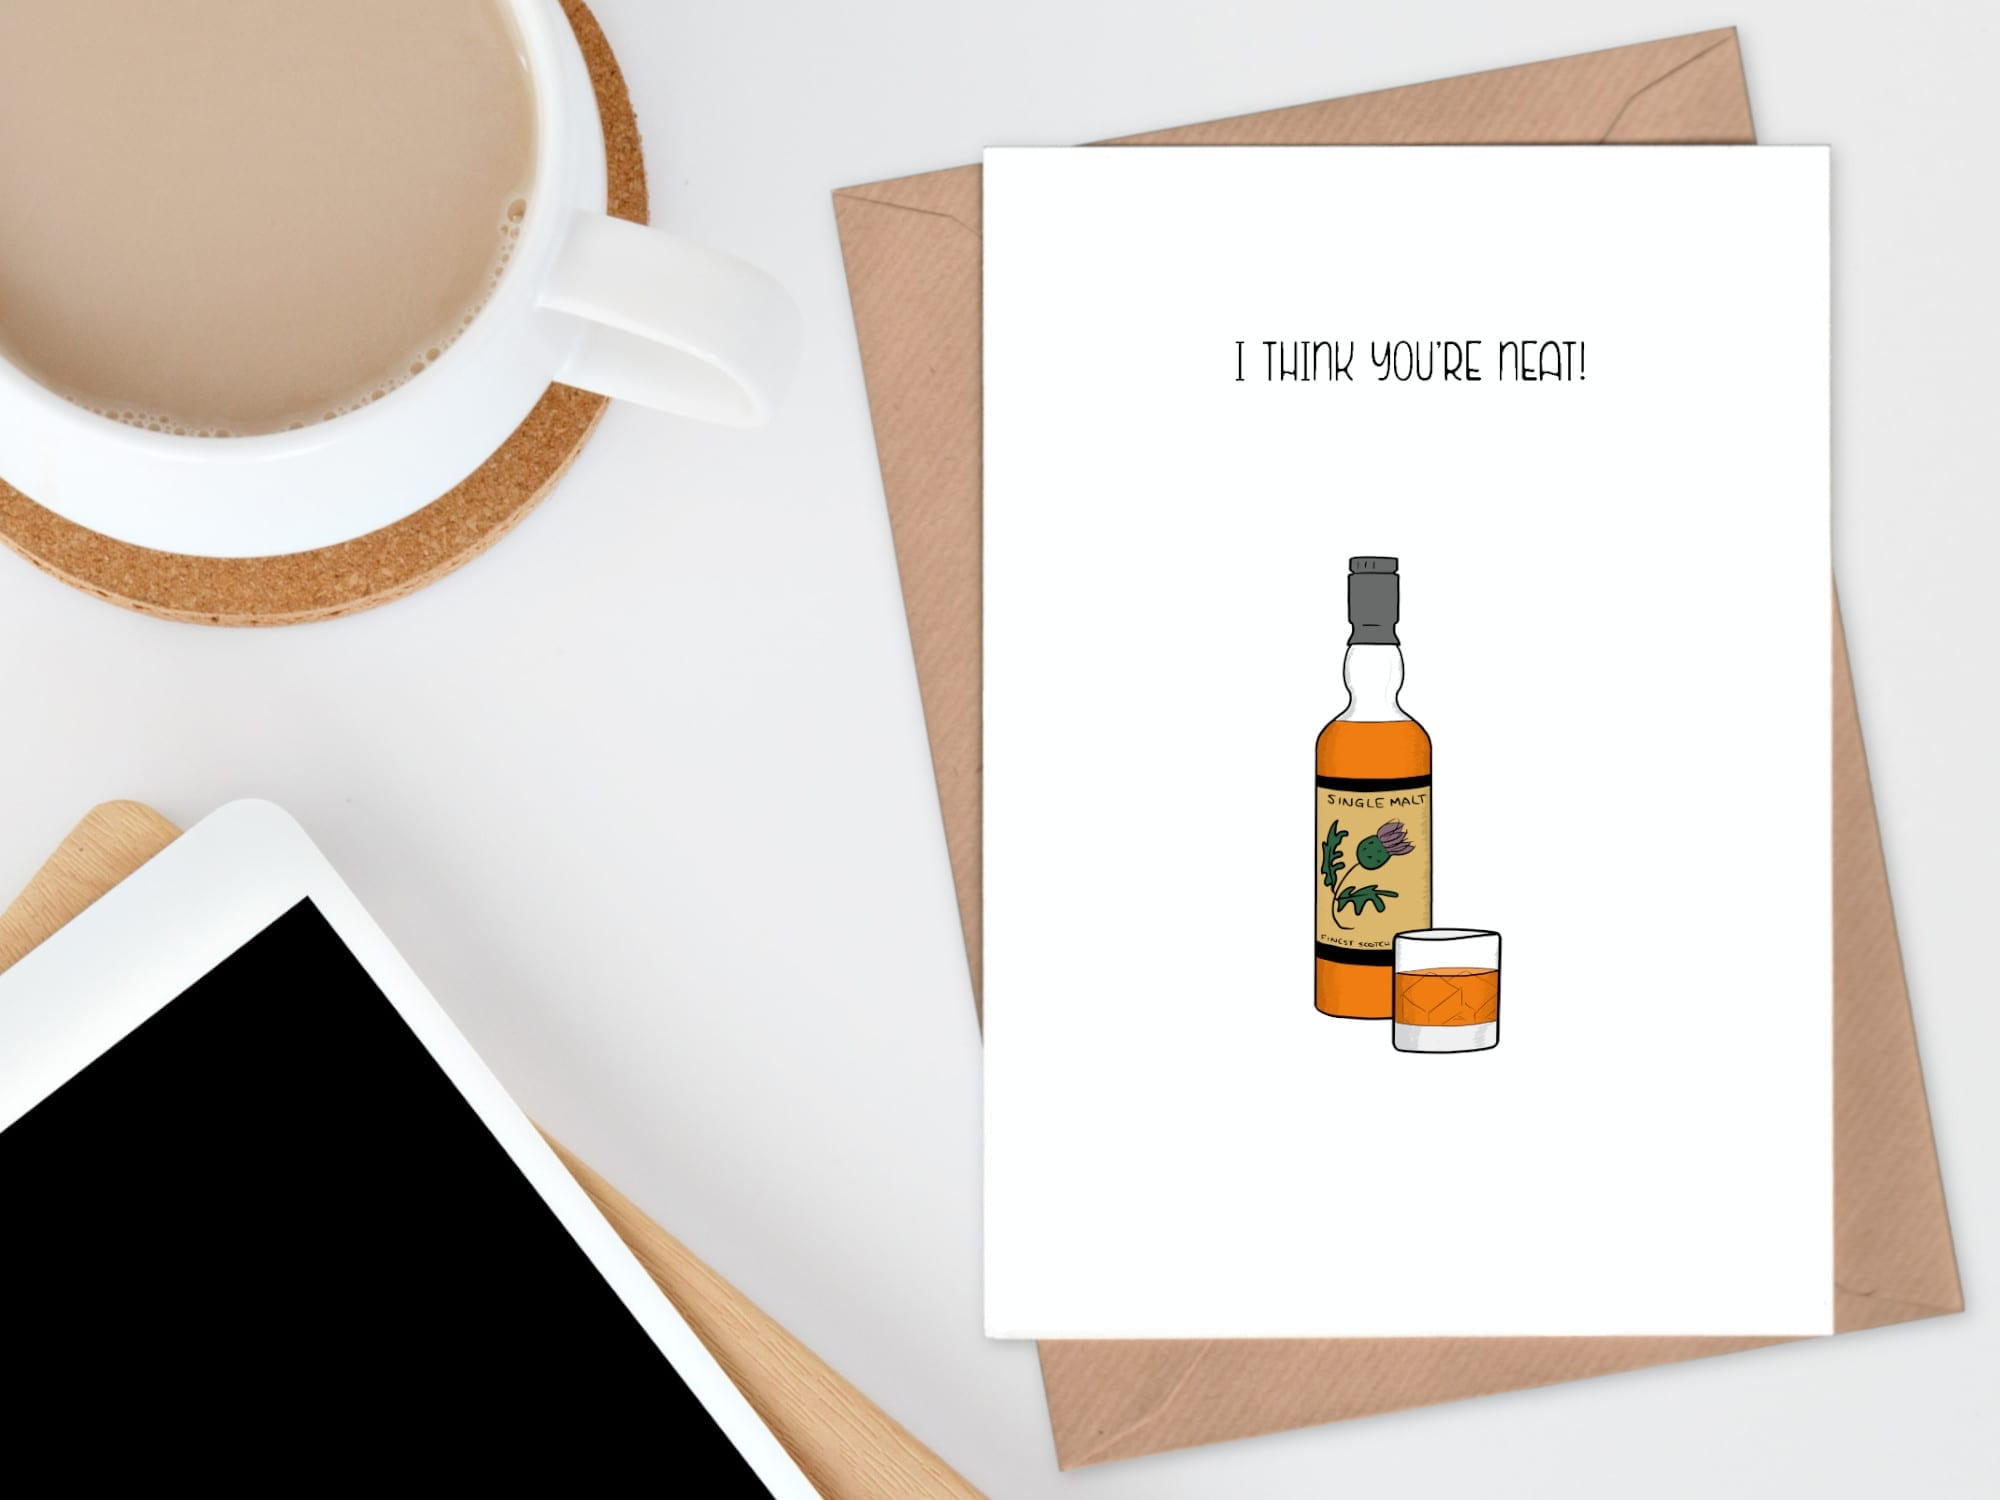 whisky you're neat card